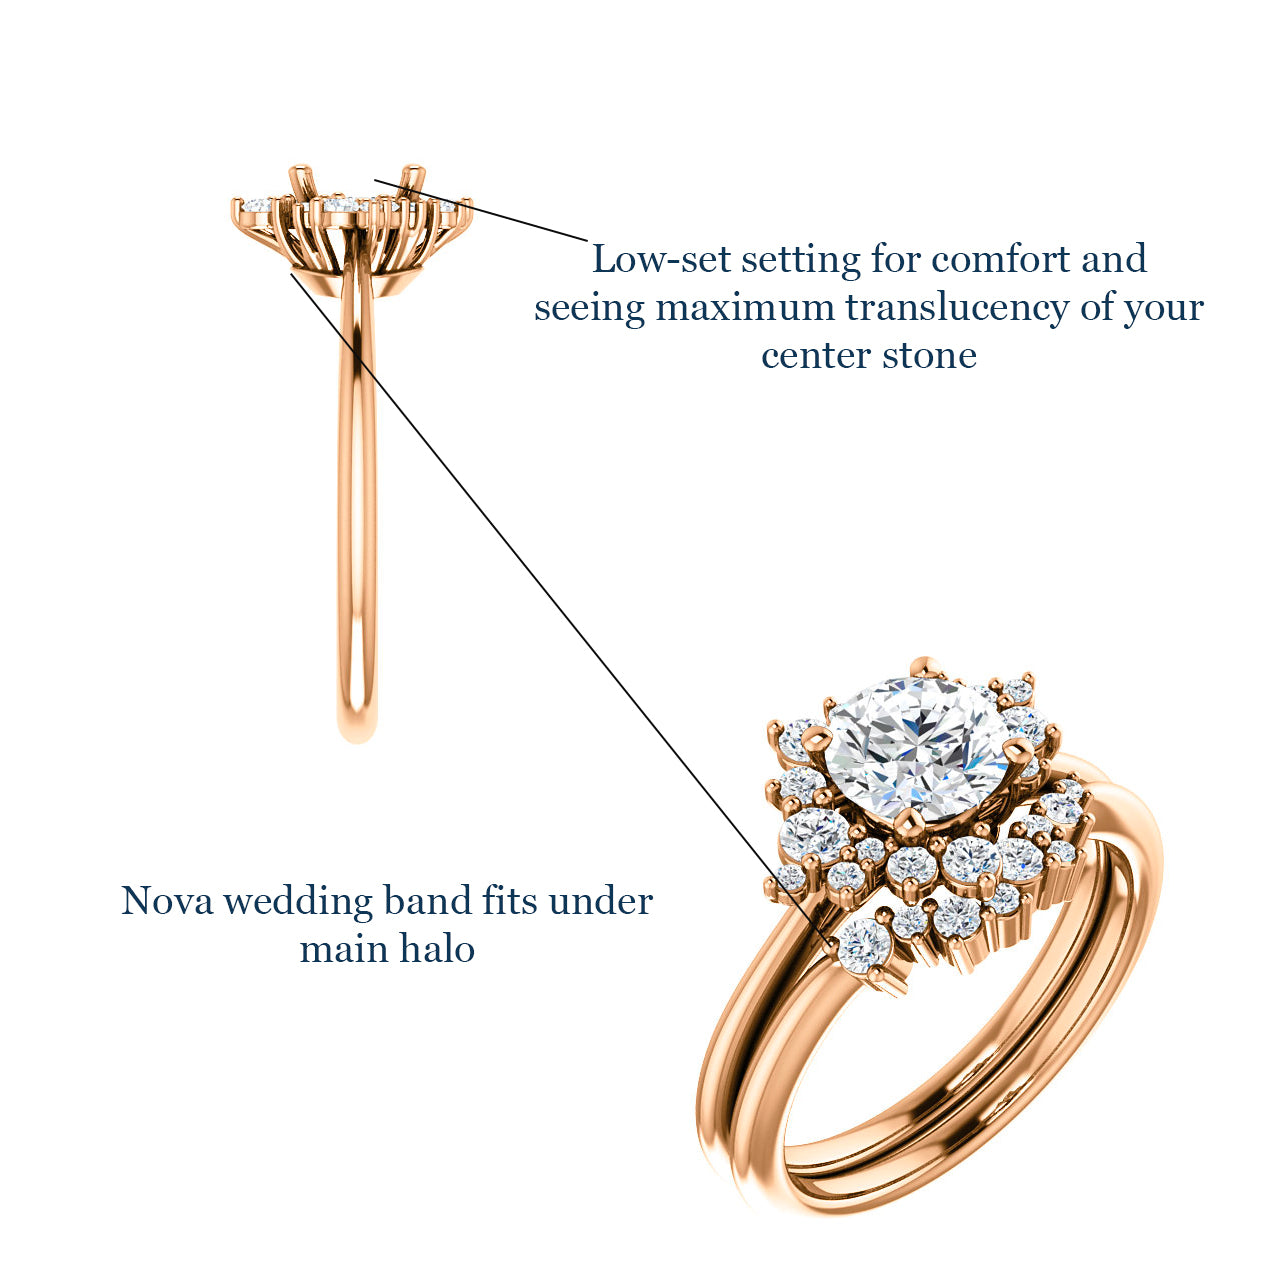 Orion setting - Salt & Pepper Celestial Diamond Engagement Rings and Wedding Bands  by Midwinter Co.